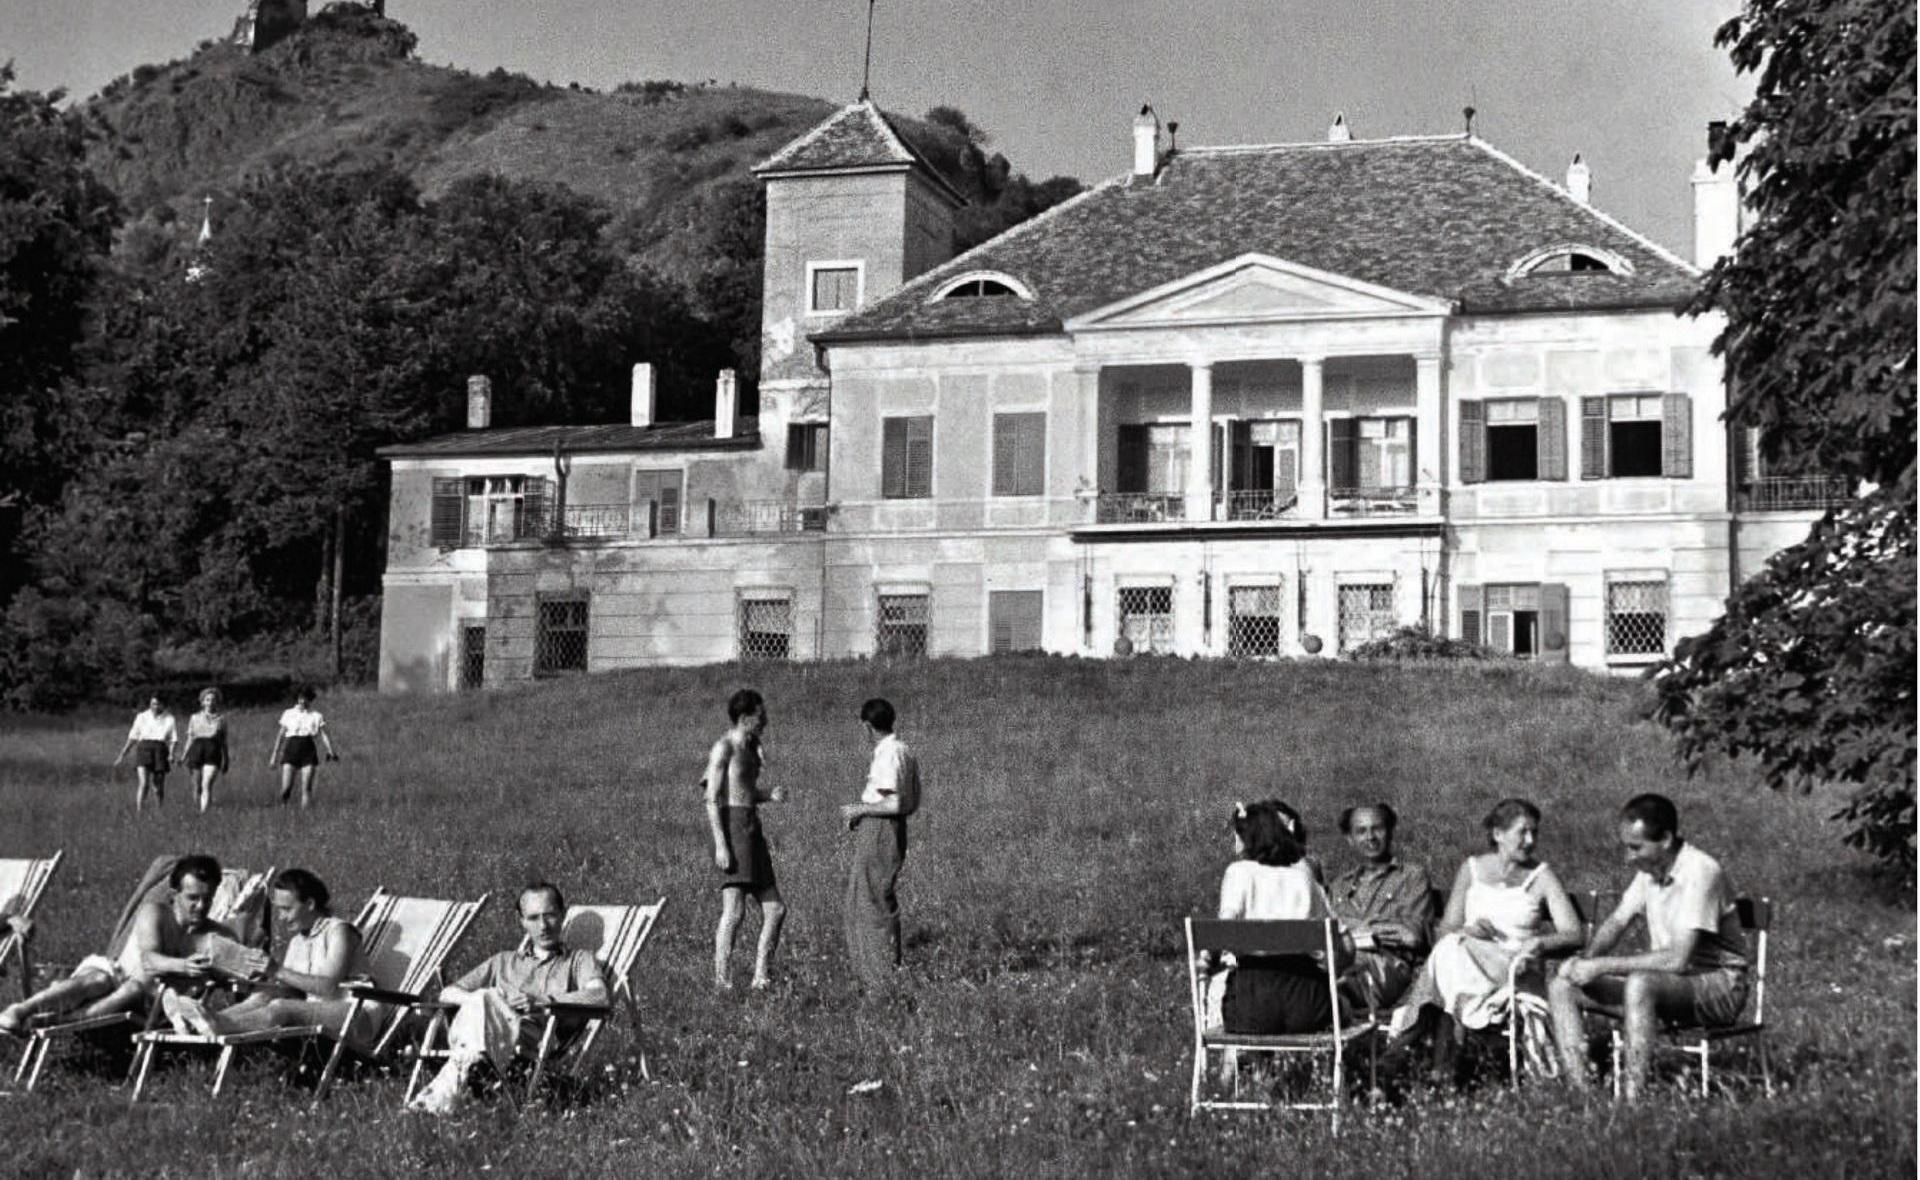 The House of Art in Szigliget, 1953